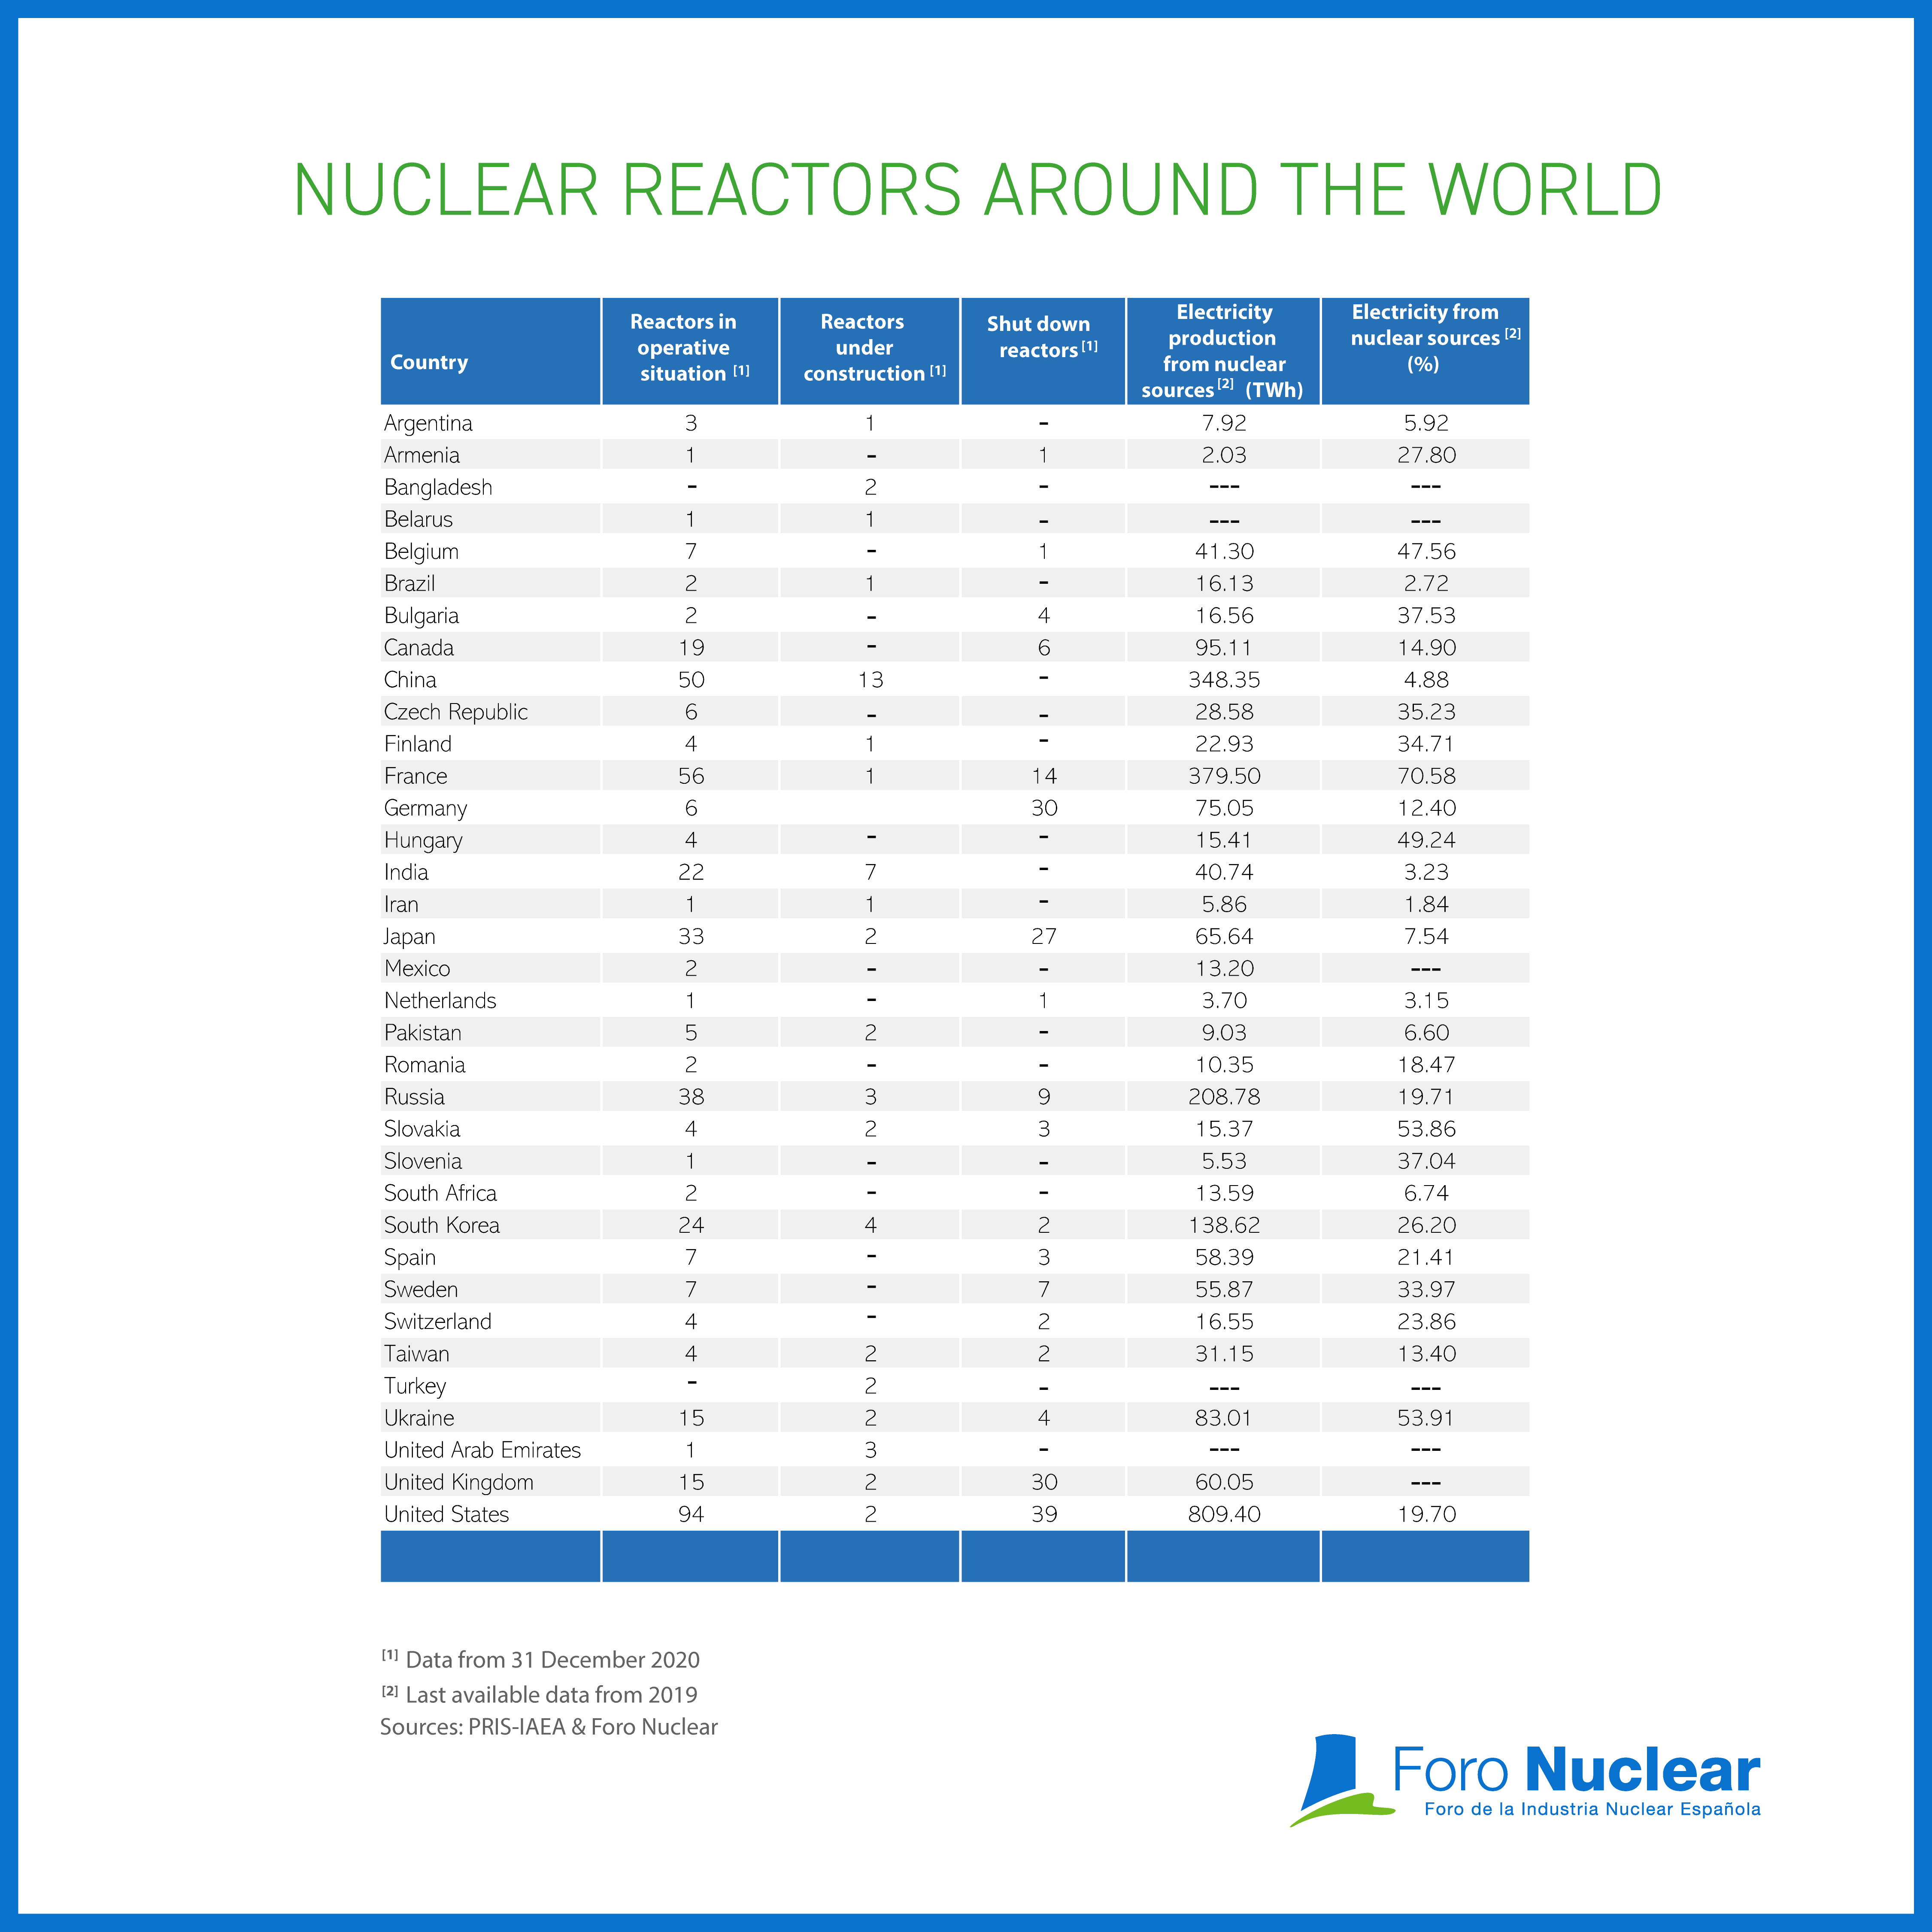 Nuclear reactors around the world